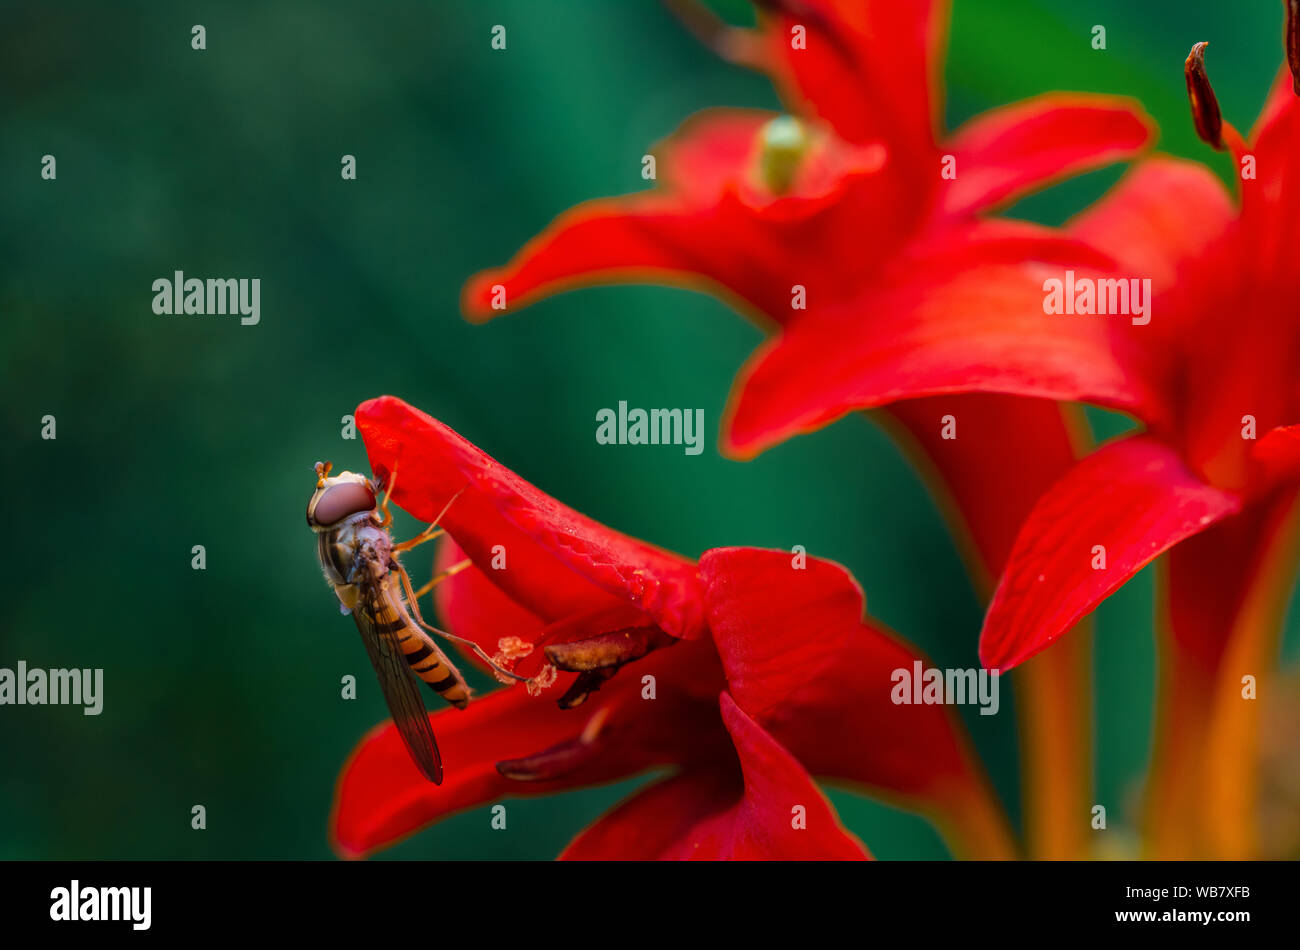 Close-up of marmalade hoverfly (female, Syrphidae - episyrphus balteatus) on the red flower of the Montbretia (Crocosmia lucifer) Stock Photo